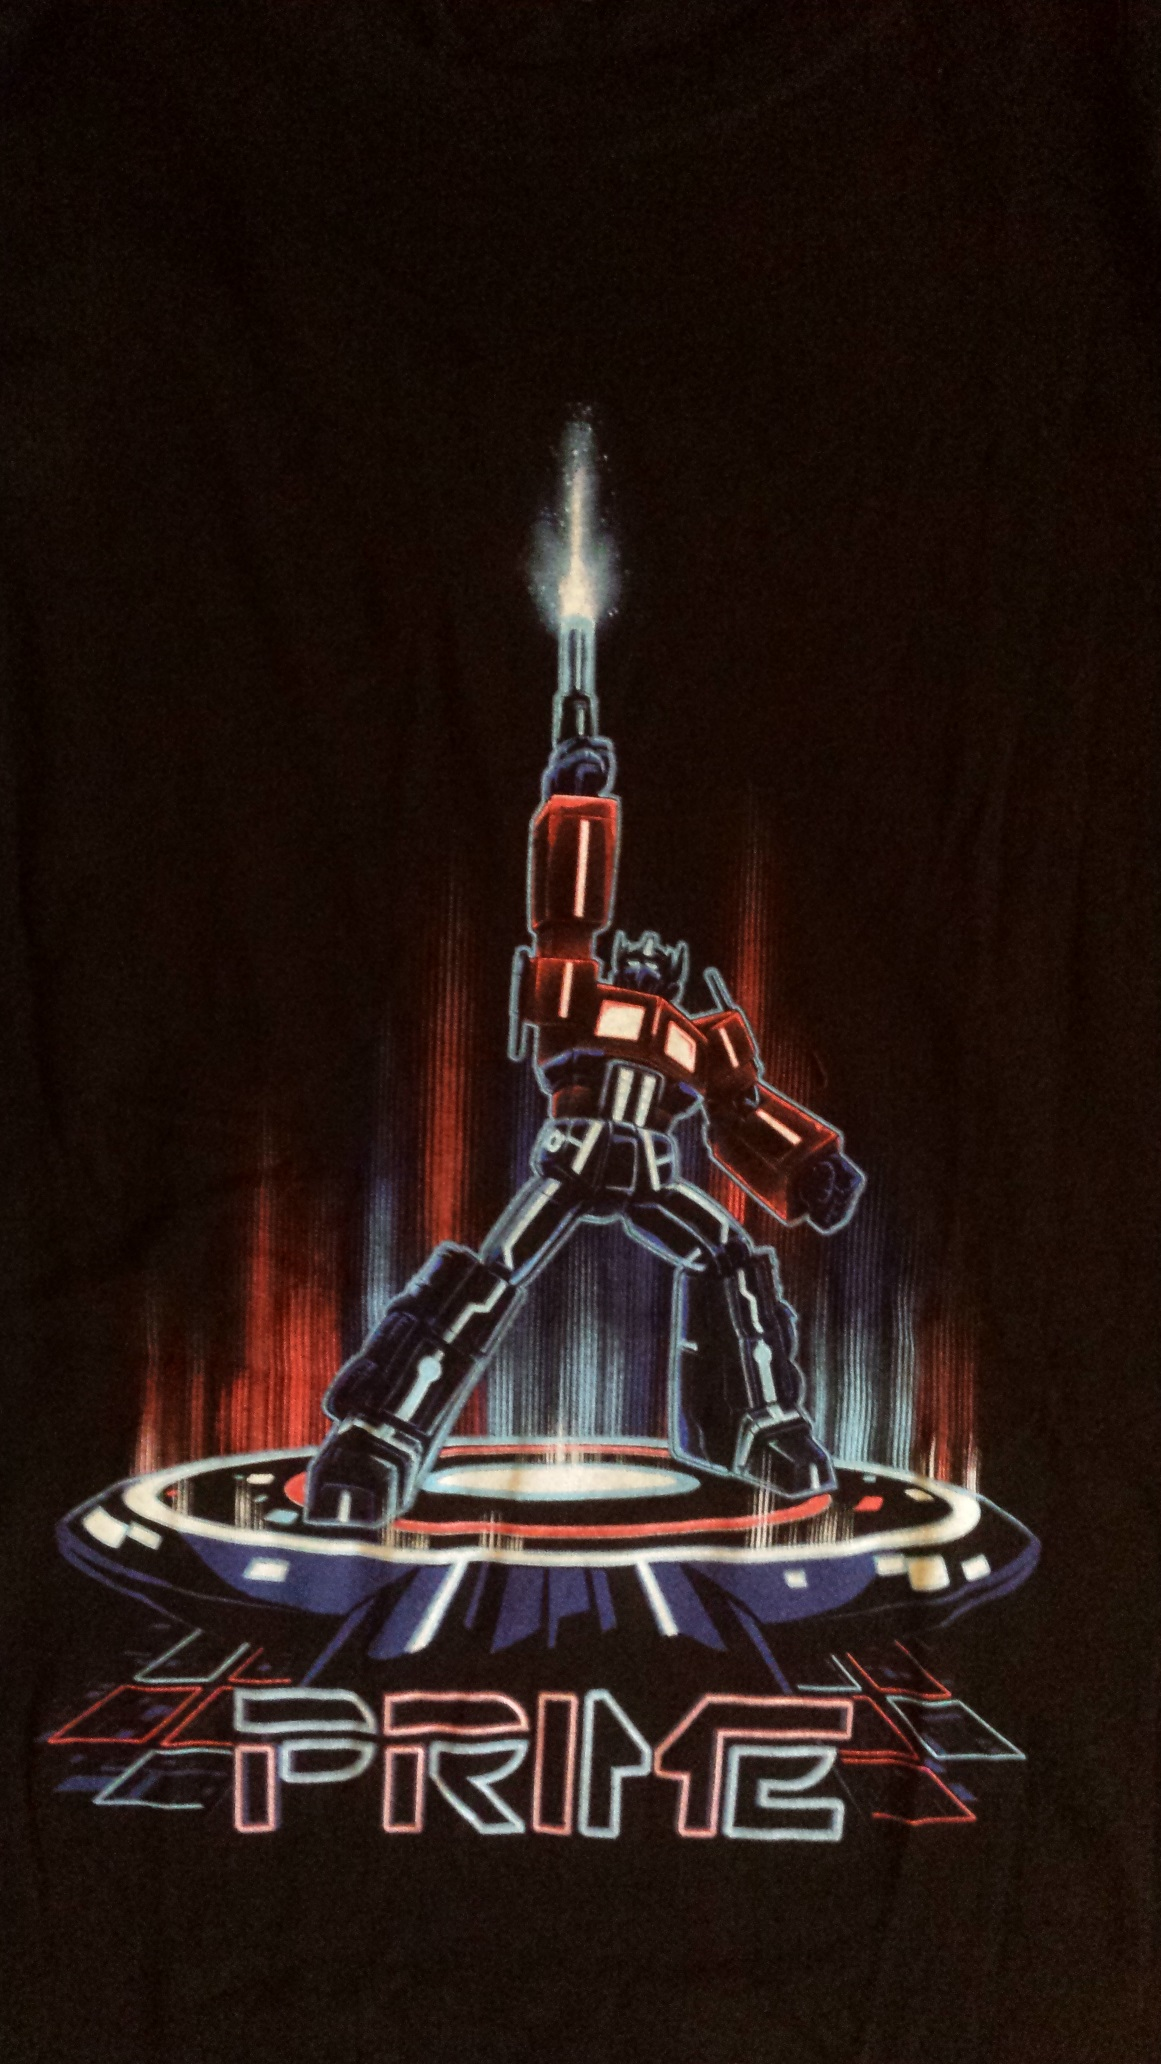 Cyber themed loot crate: transformers/tron tshirt